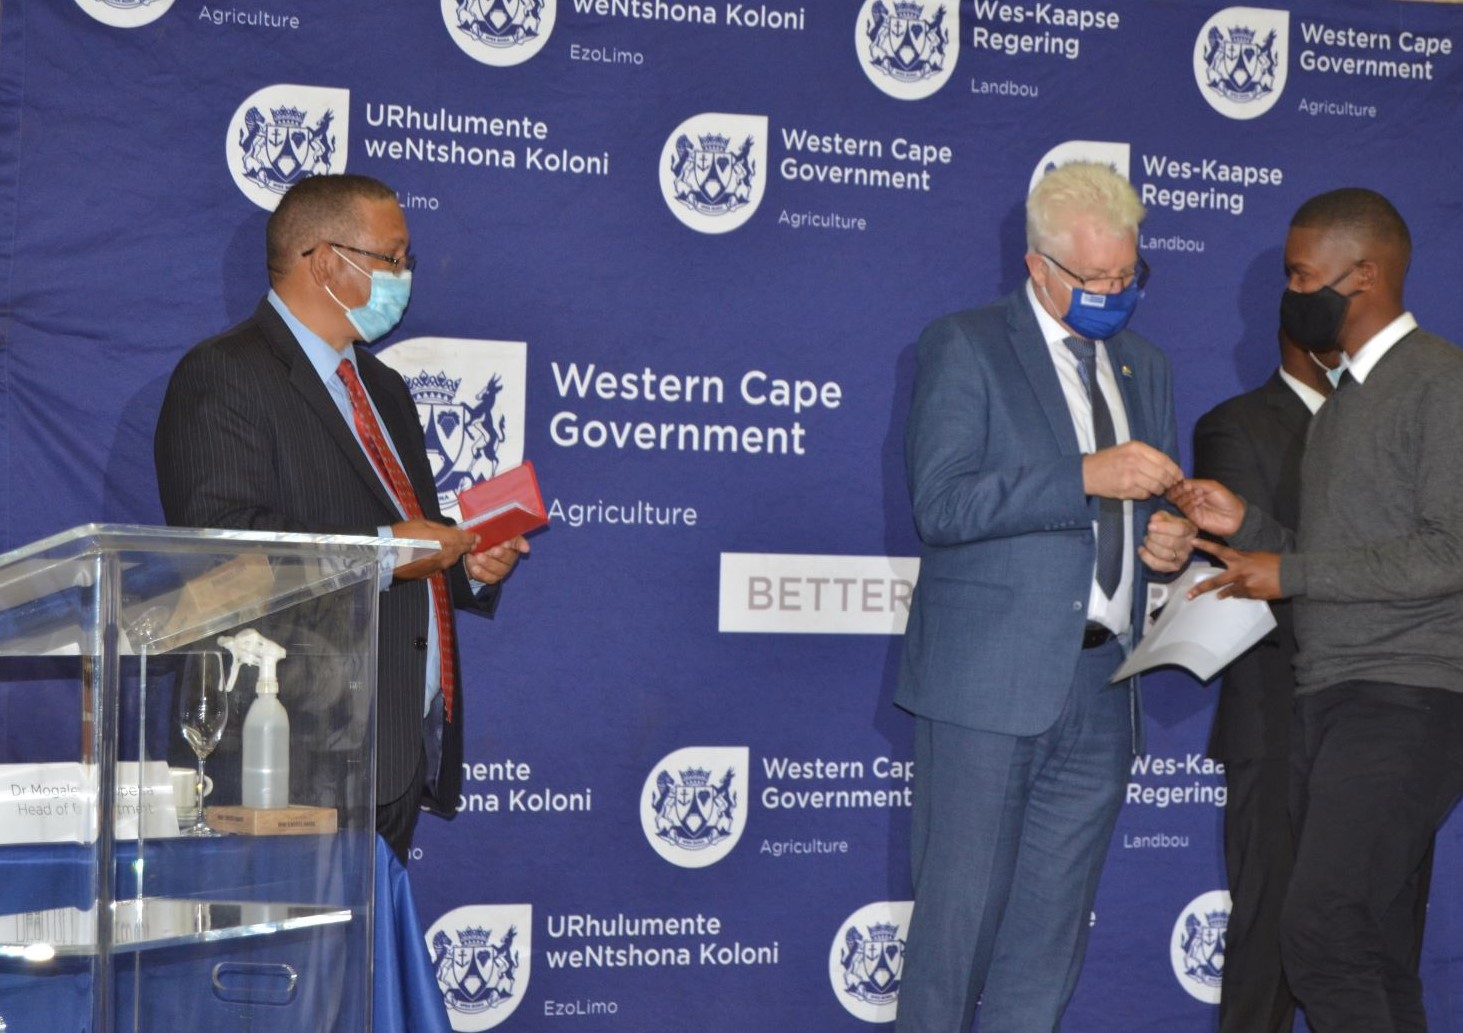 PREMIER ALAN WINDE AND MINISTER MEYER CONGRATULATE DRONE PILOTS